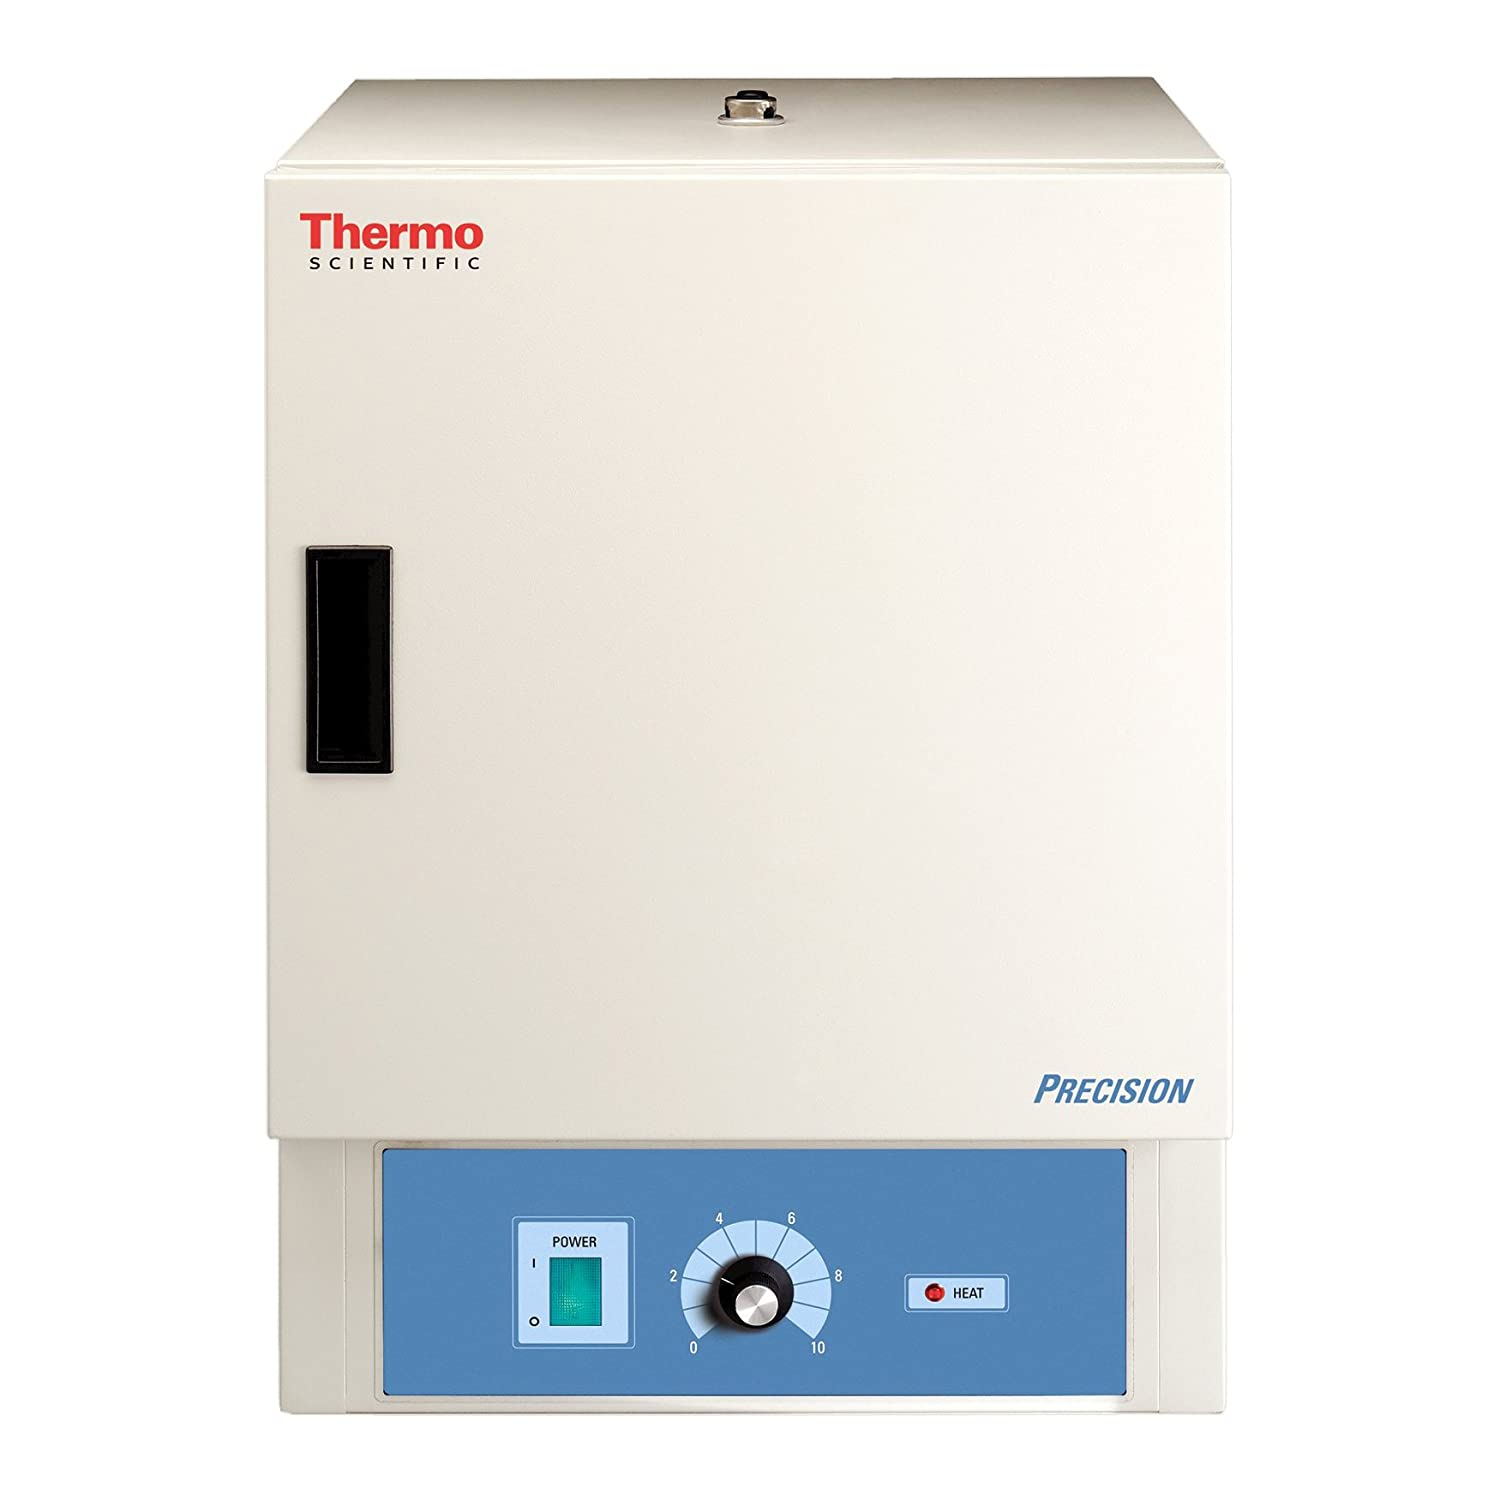 Thermo Scientific ELED PR305225G Precision Gravity Convection Compact Heating and Drying Oven with Bi-Metallic Thermostat Control and LED Display, 120V, 48L Capacity